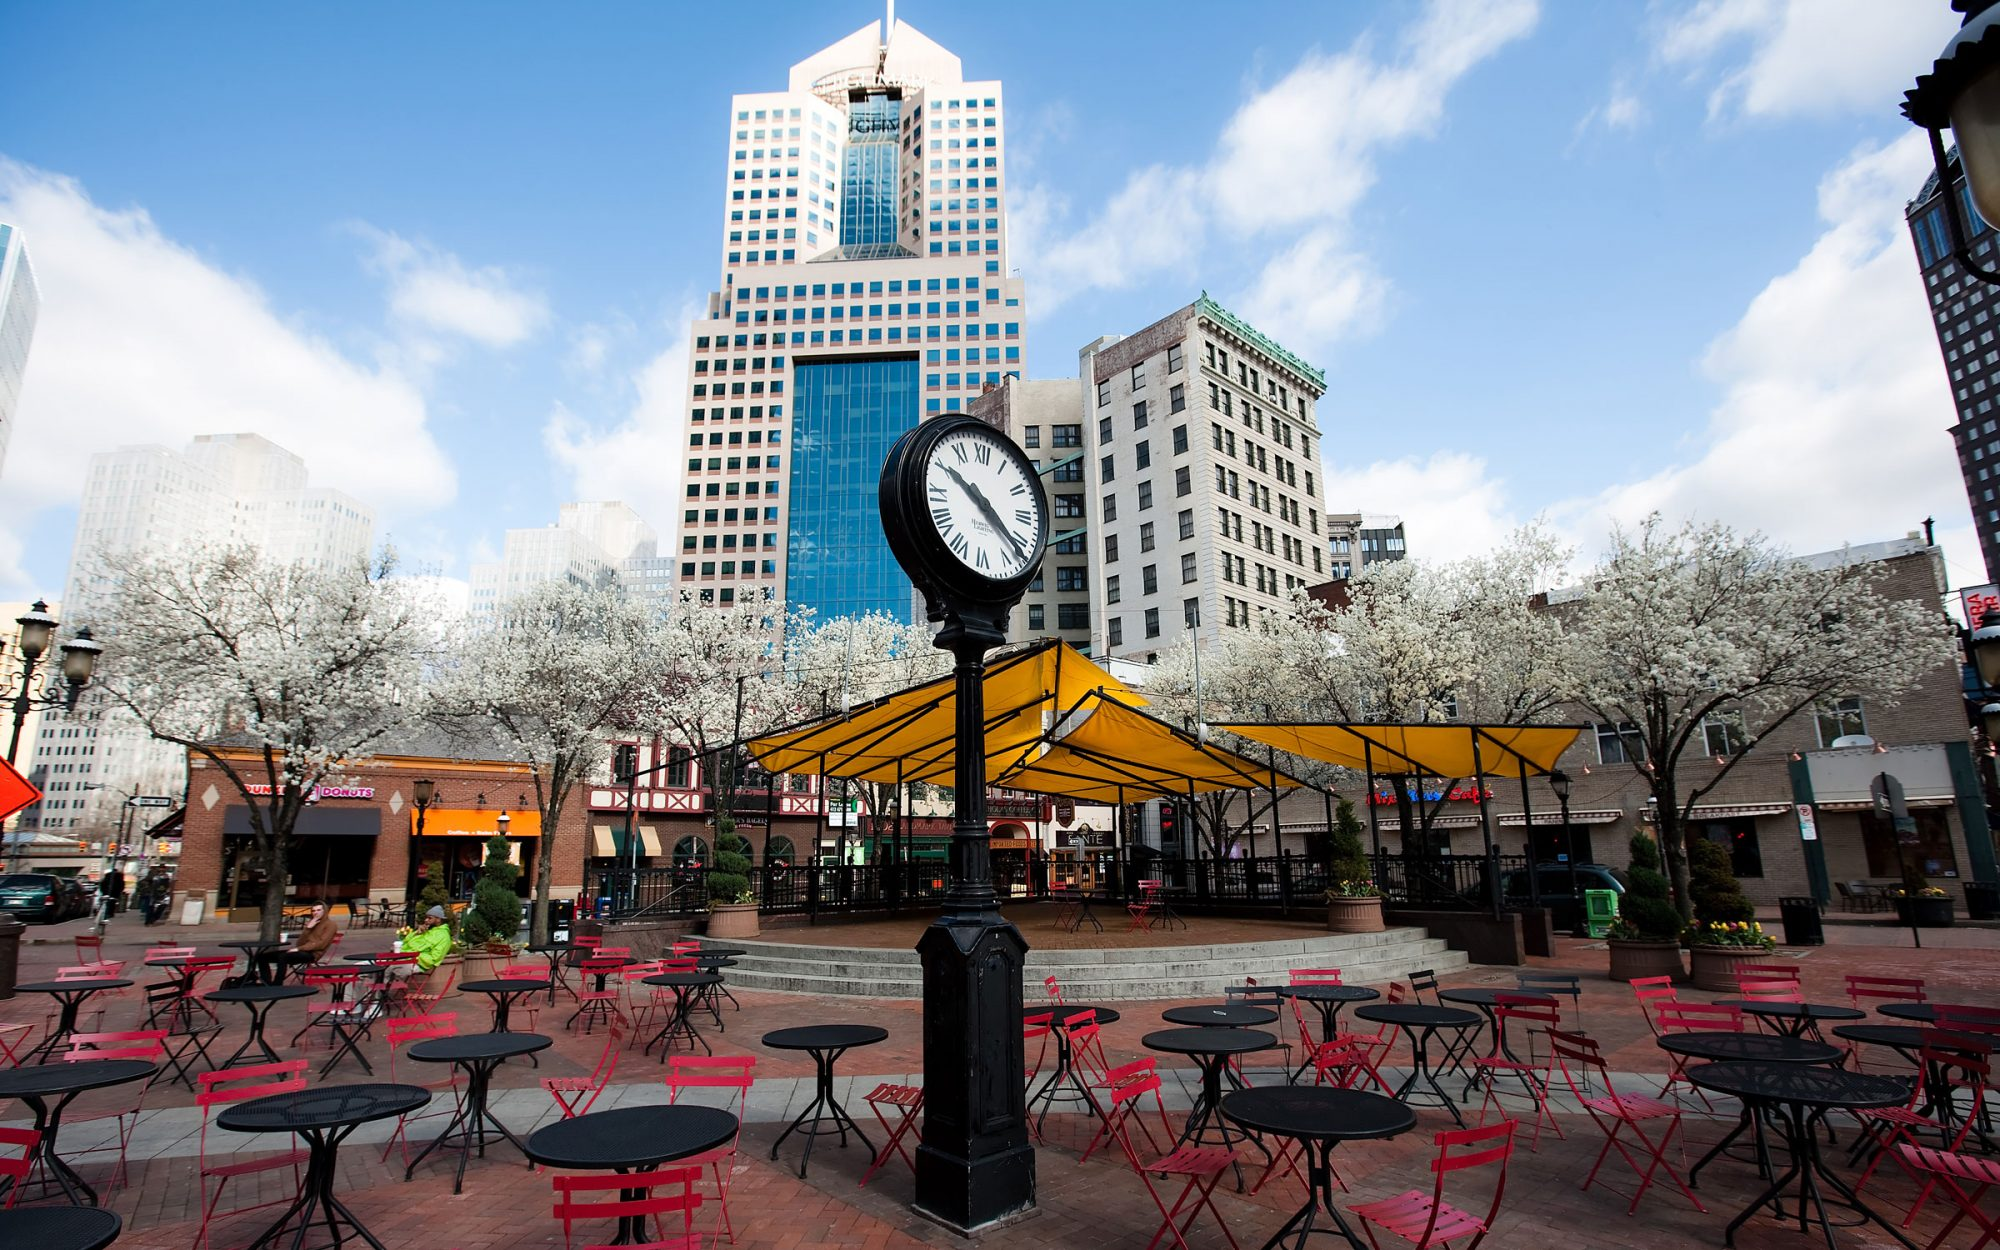 Market Square in Pittsburgh